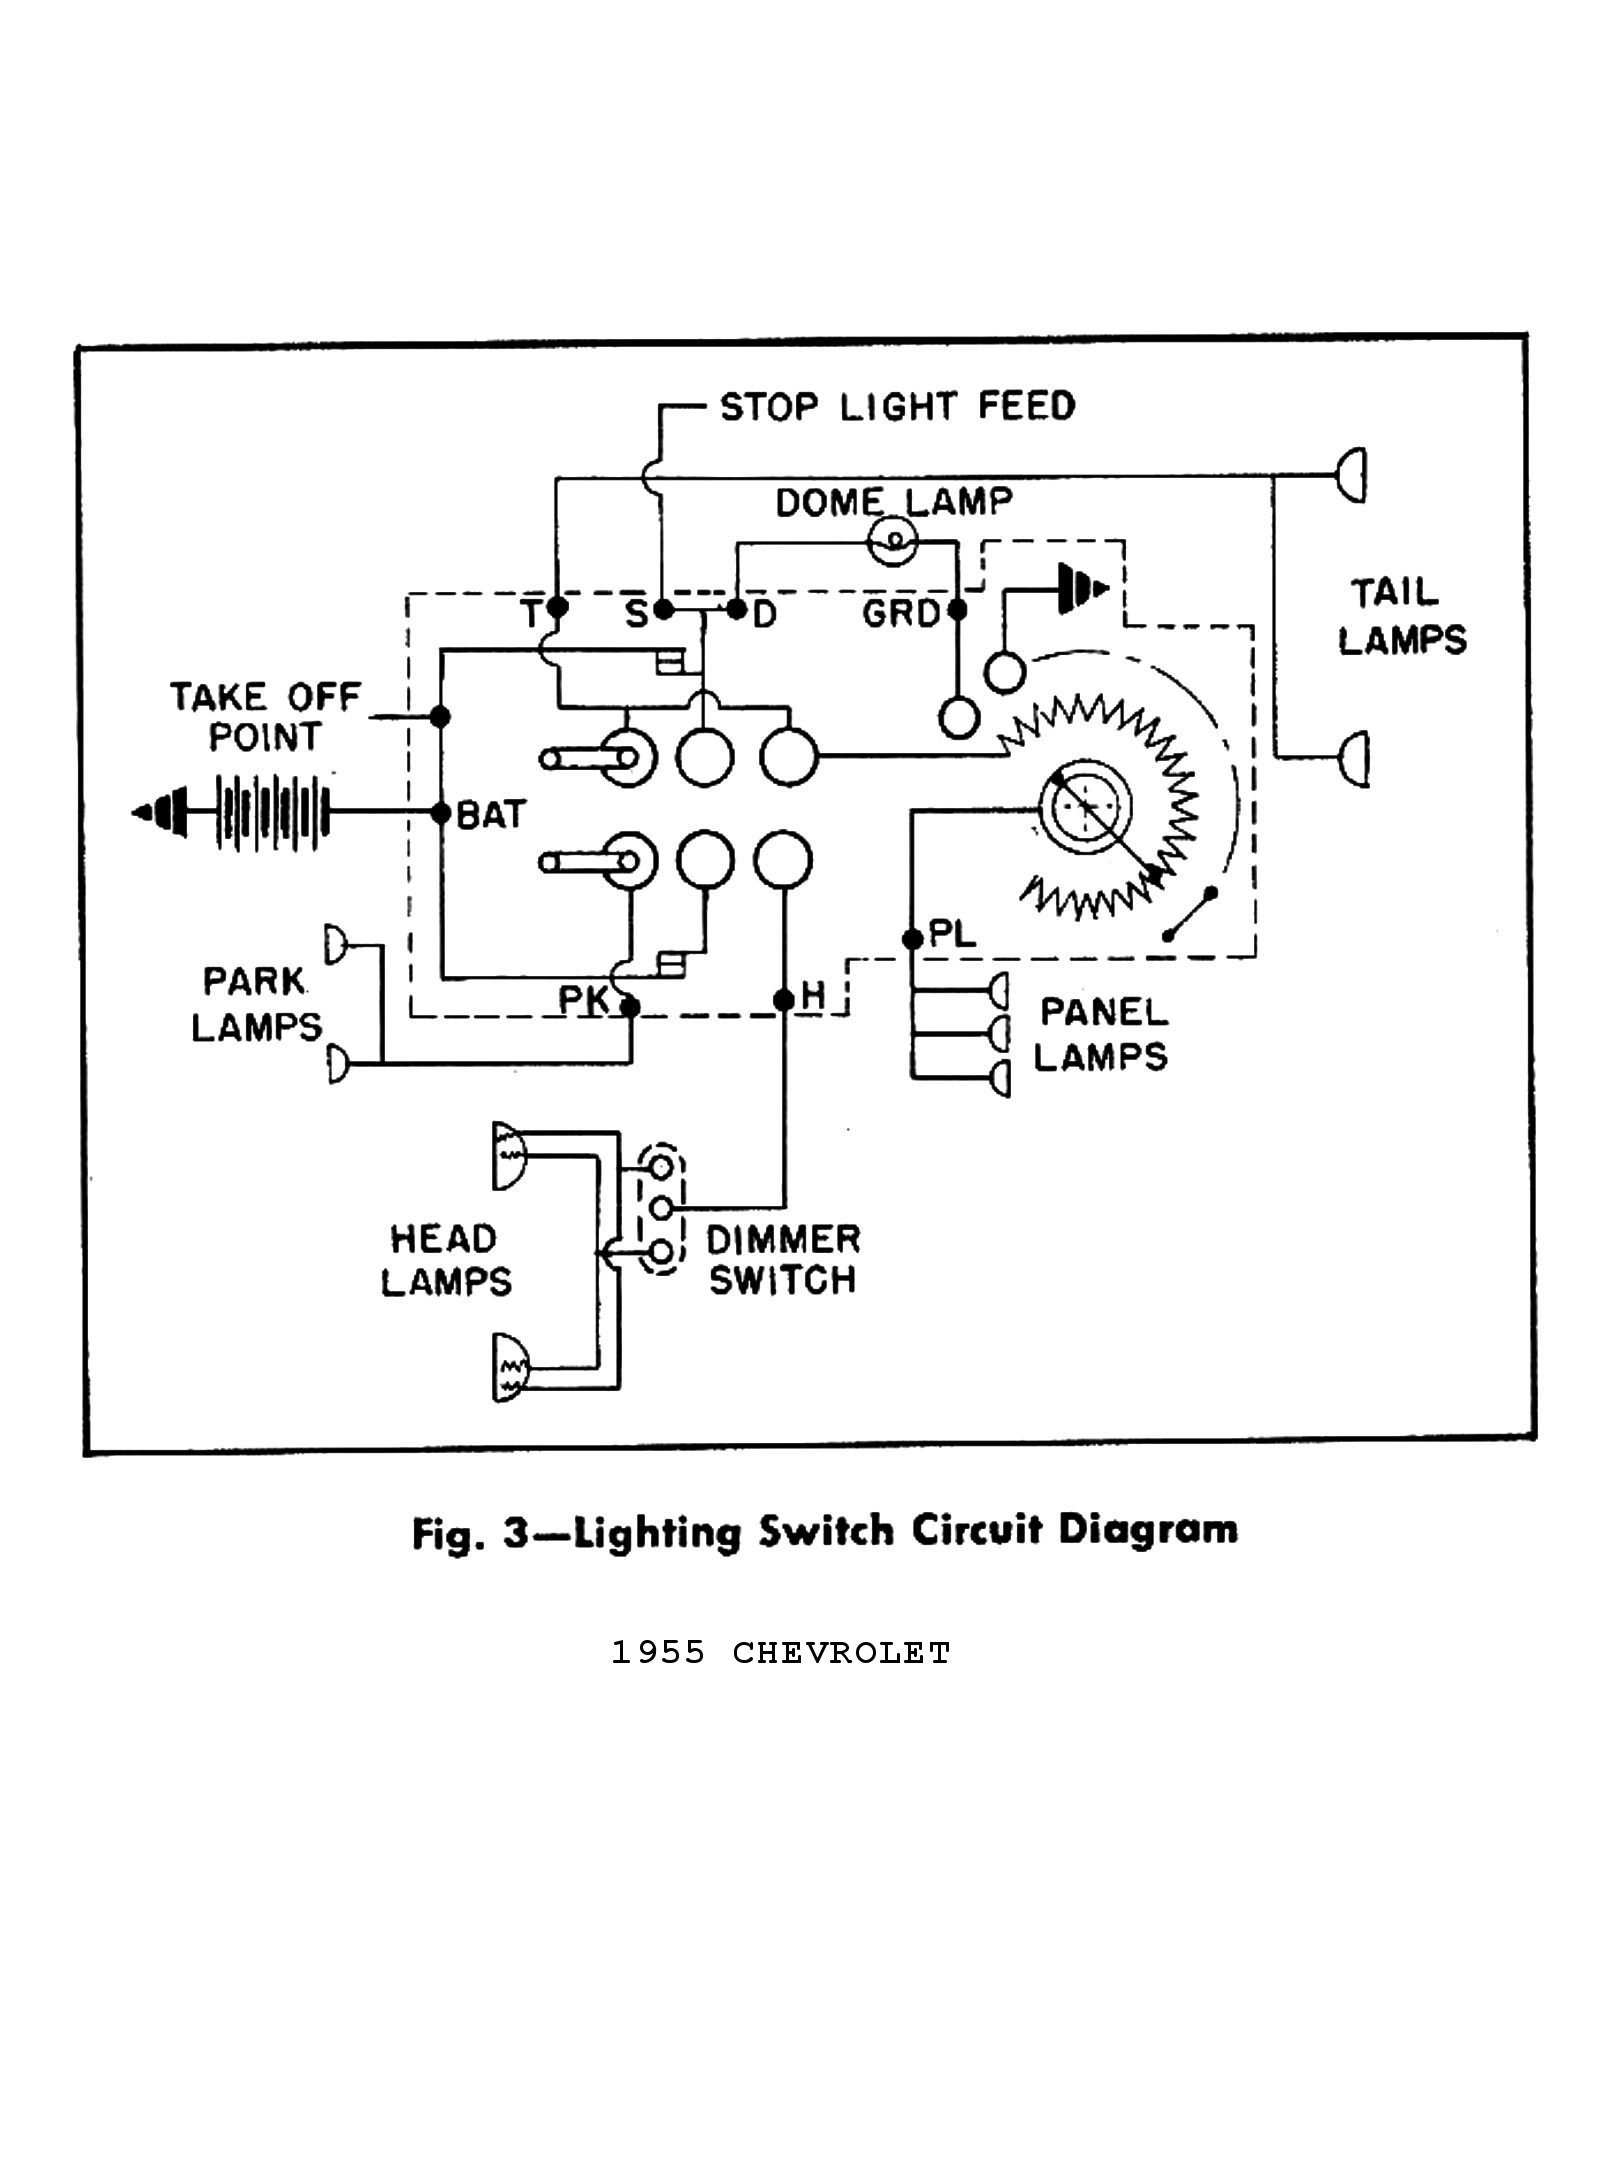 1971 Nova Headlight Switch Wiring Diagram Good 1st 1970 Chevrolet 1967 Third Level Rh 19 1 16 Jacobwinterstein Com Chevy 1966